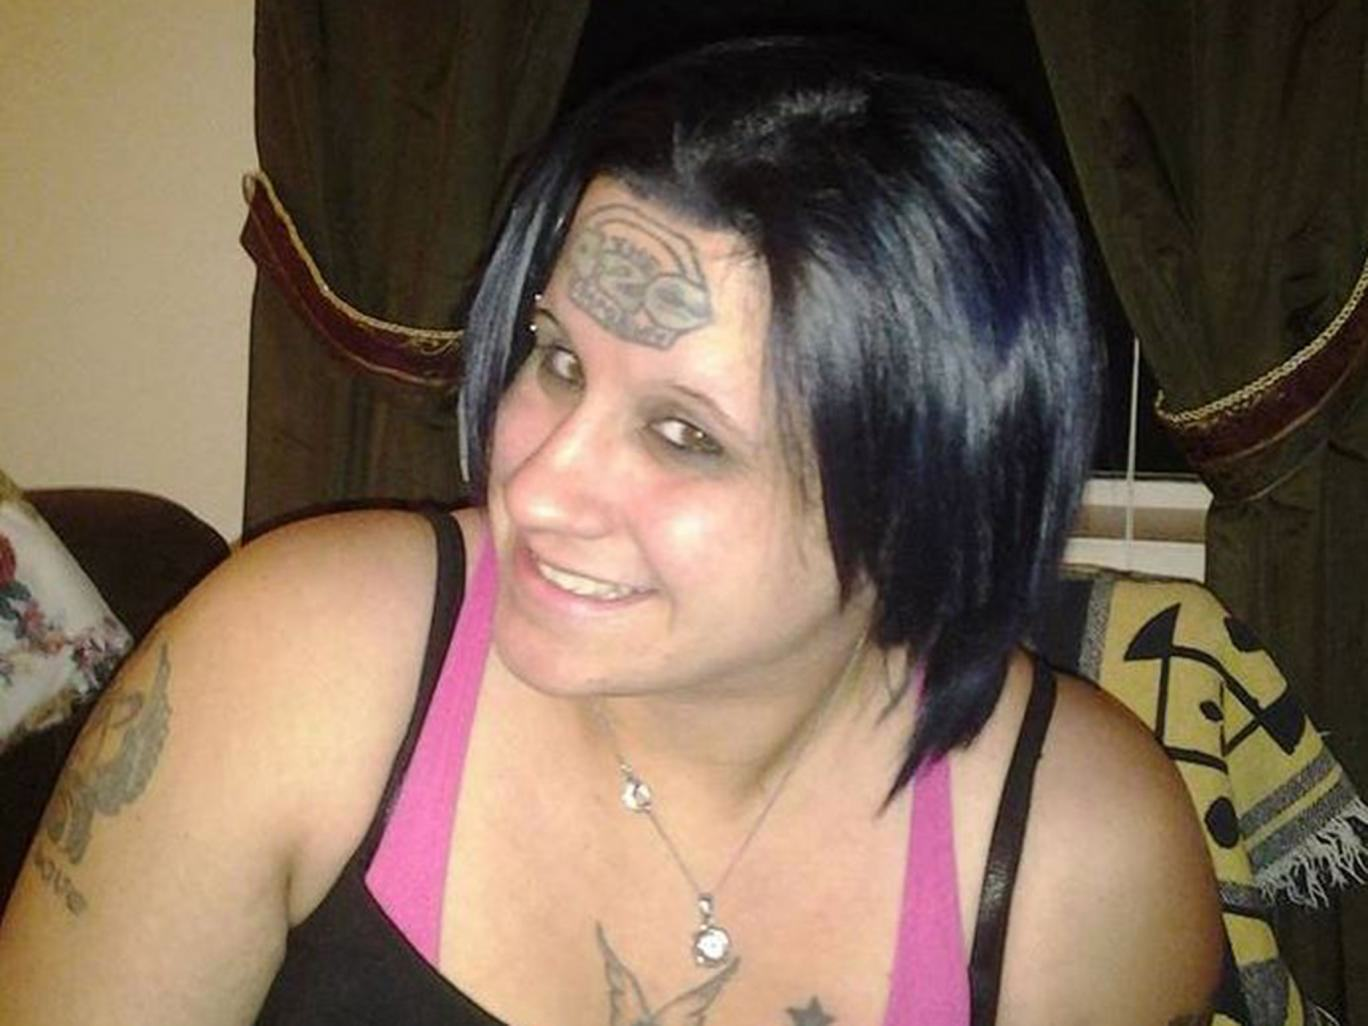 Woman Gets Ridiculous Forehead Tattoo, Uses Fundraising Site To Get It Removed tabitha west crowdfunding tatto